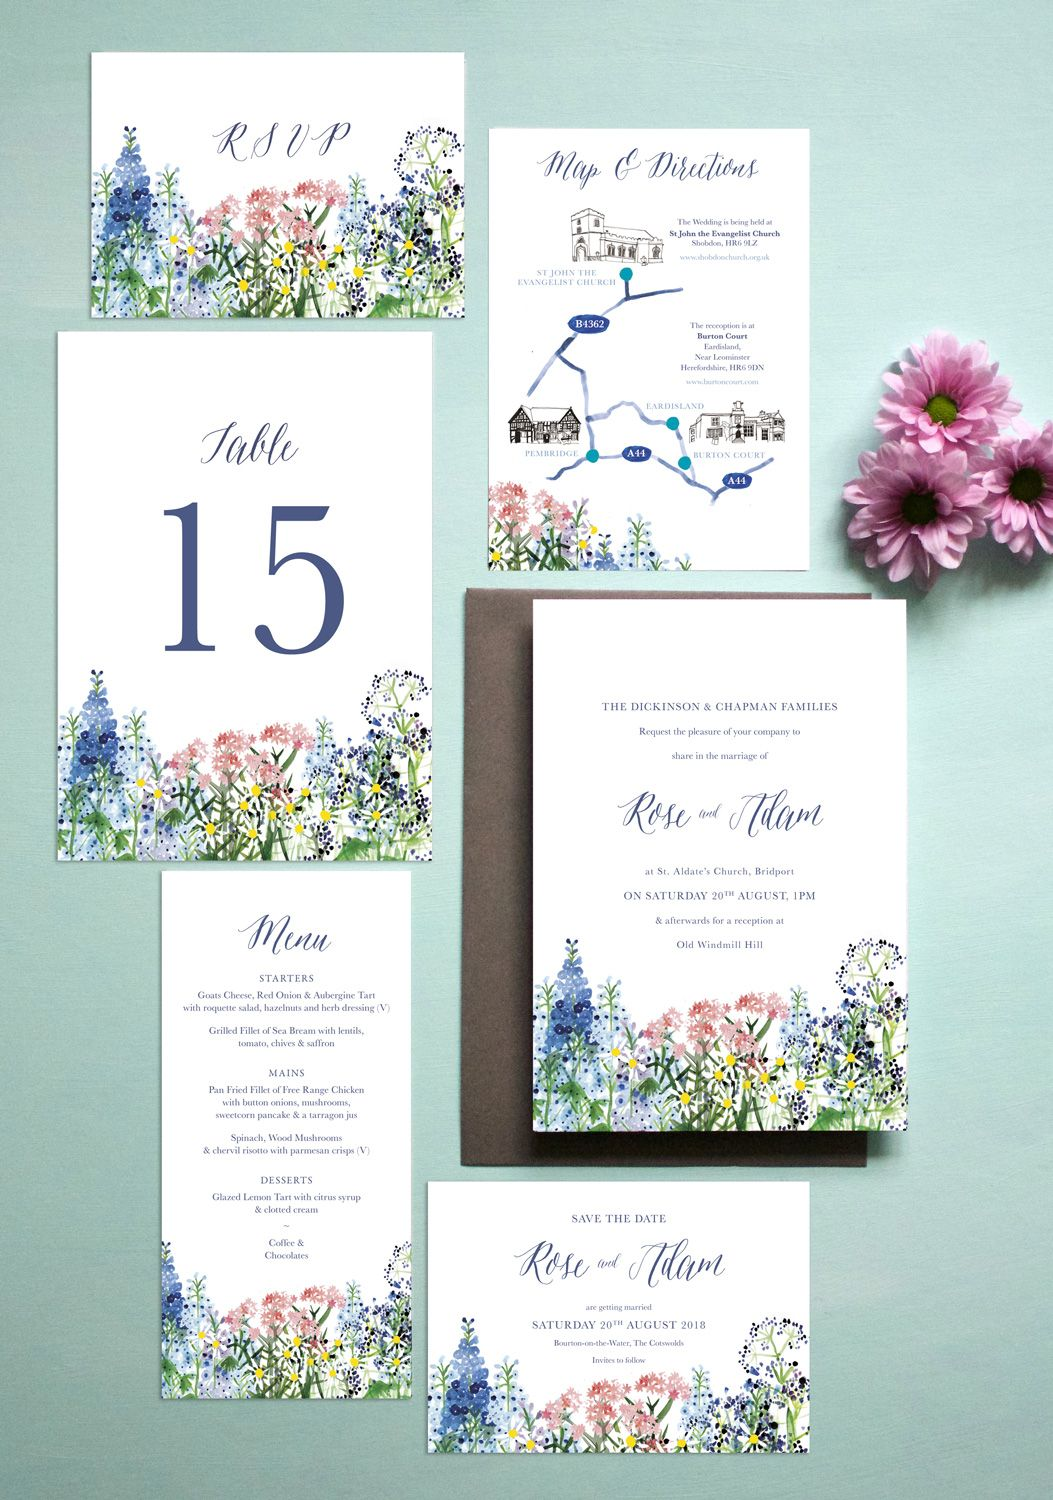 Calligraphy & Flowers Wedding Stationery | By Hollyhock Lane English summer  meado… | Flower wedding invitation, Wildflower wedding invitations,  Wildflower wedding